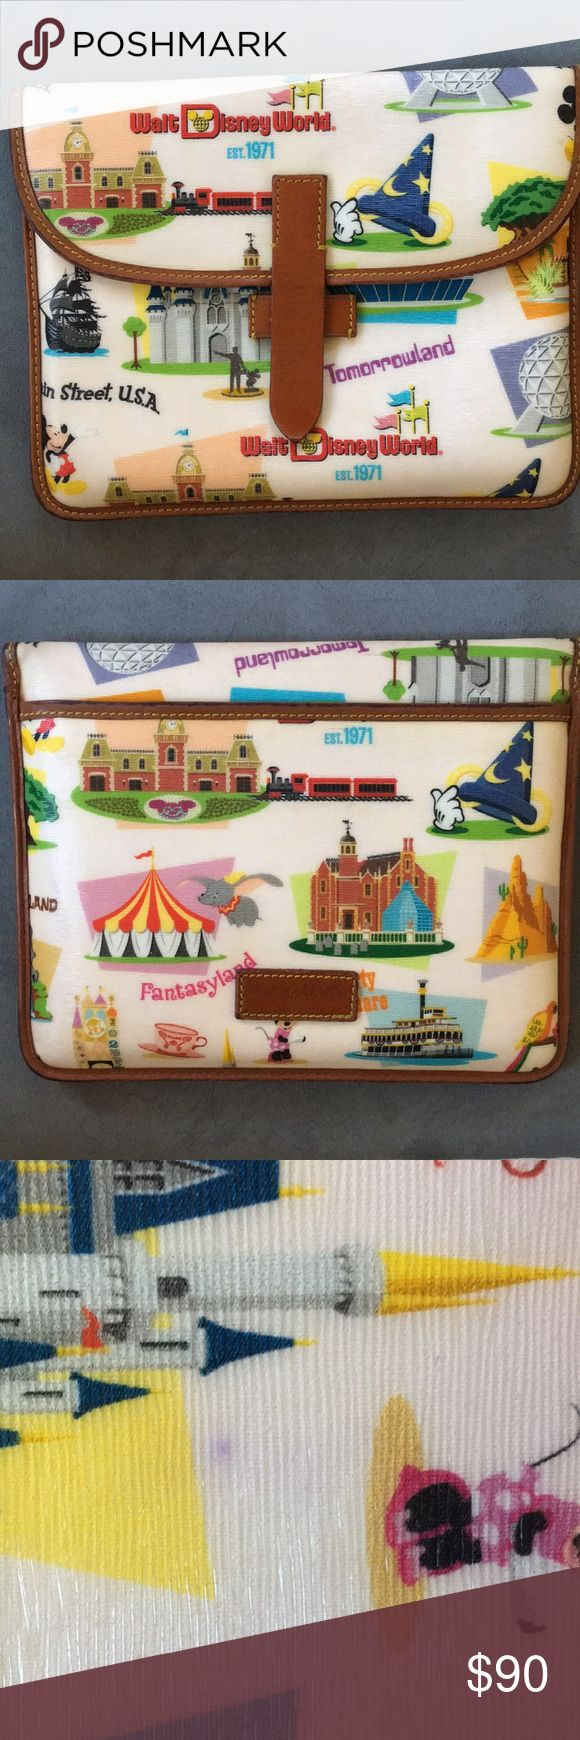 Disney iPad Case Dooney & Bourke iPad case. Used for an iPad Air 1 but could possibly fit a slightly larger iPad. Only one small ink stain but it is underneath the front flap. Dooney & Bourke Accessories